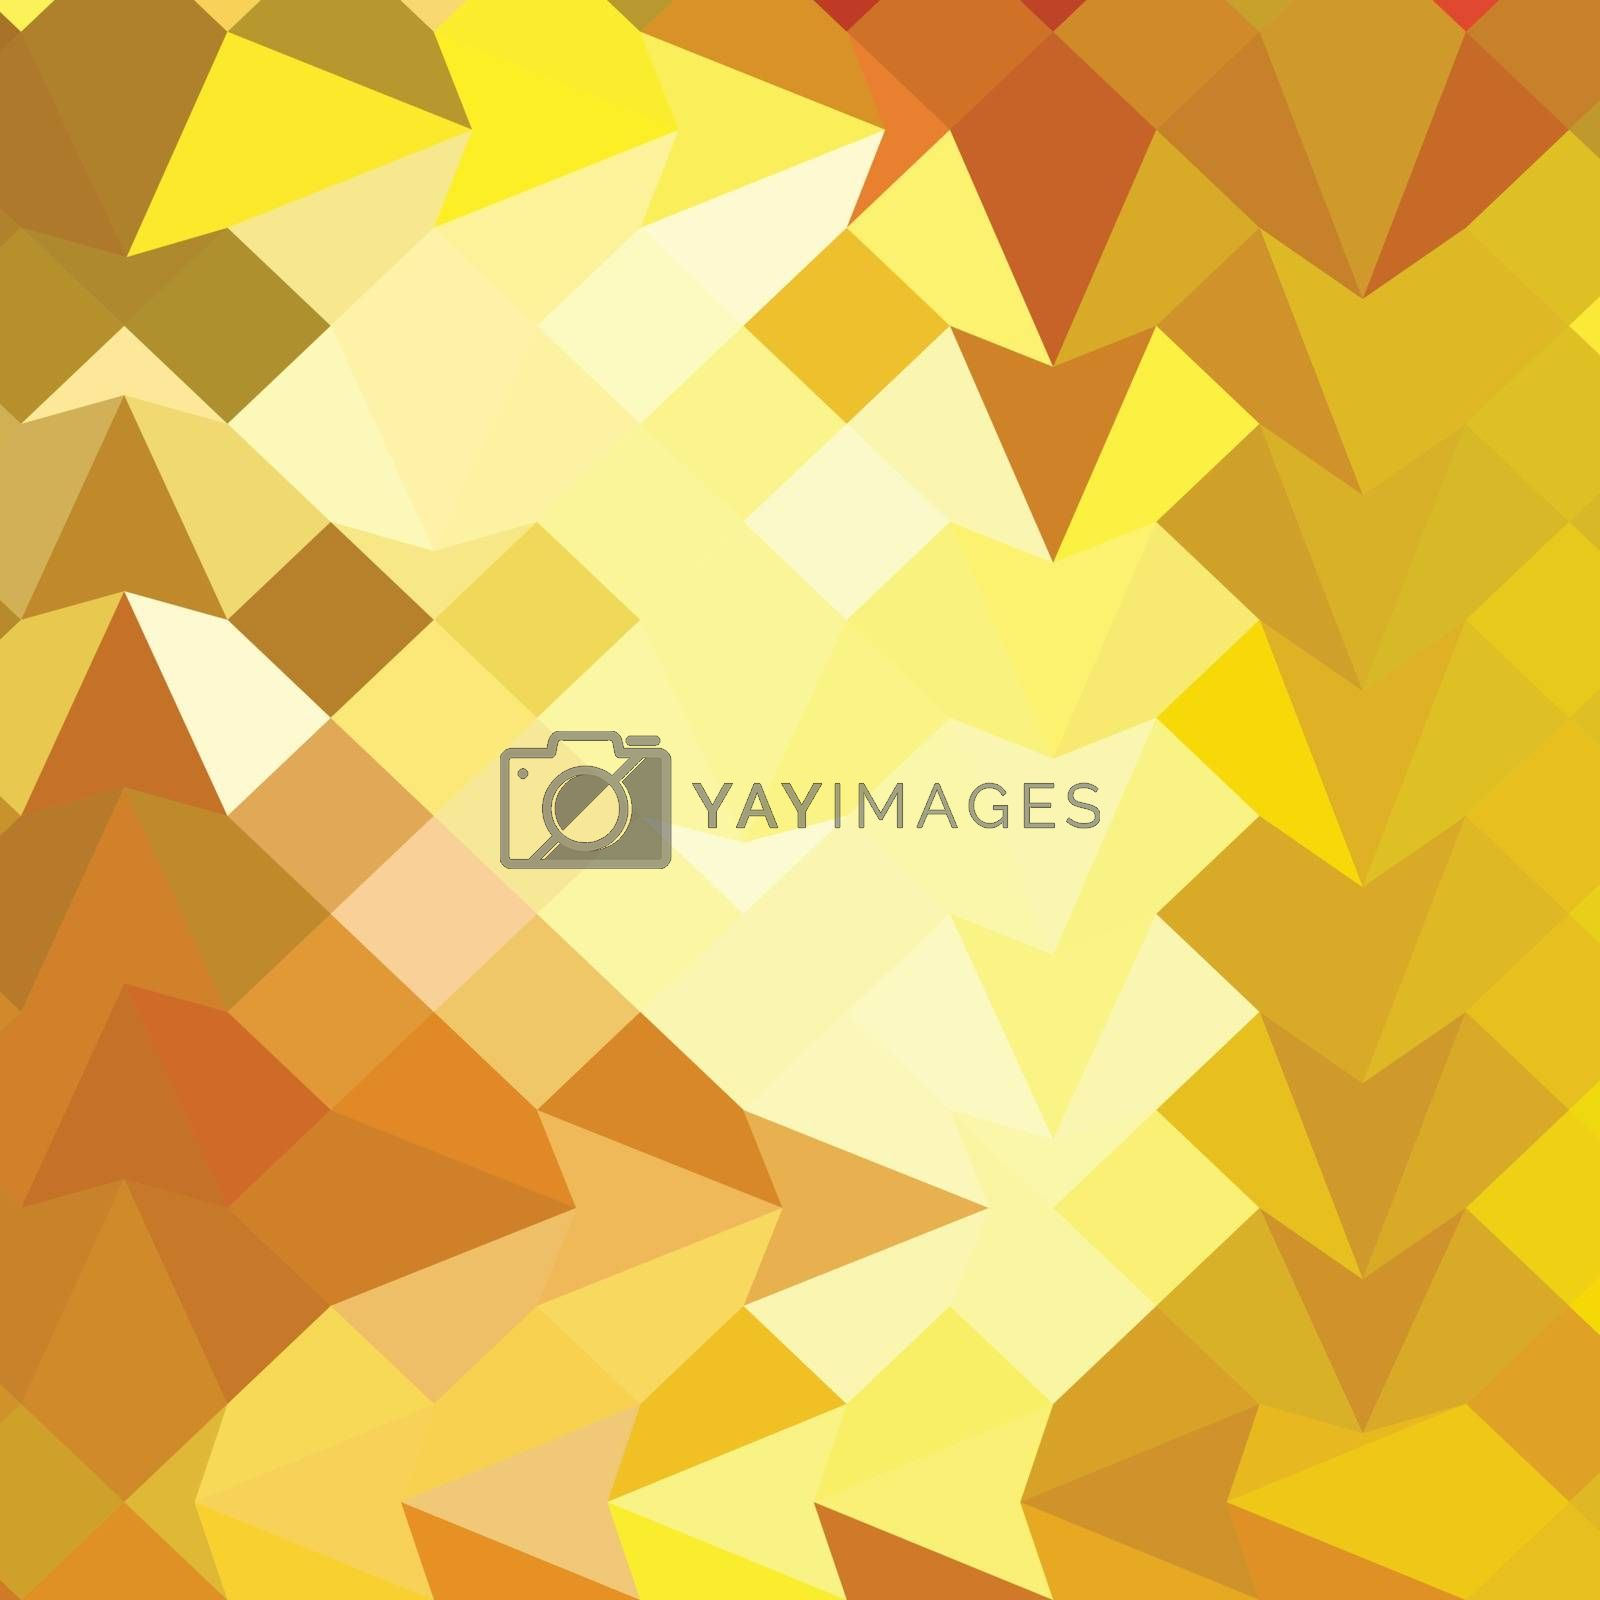 Low polygon style illustration of amber yellow abstract geometric background.